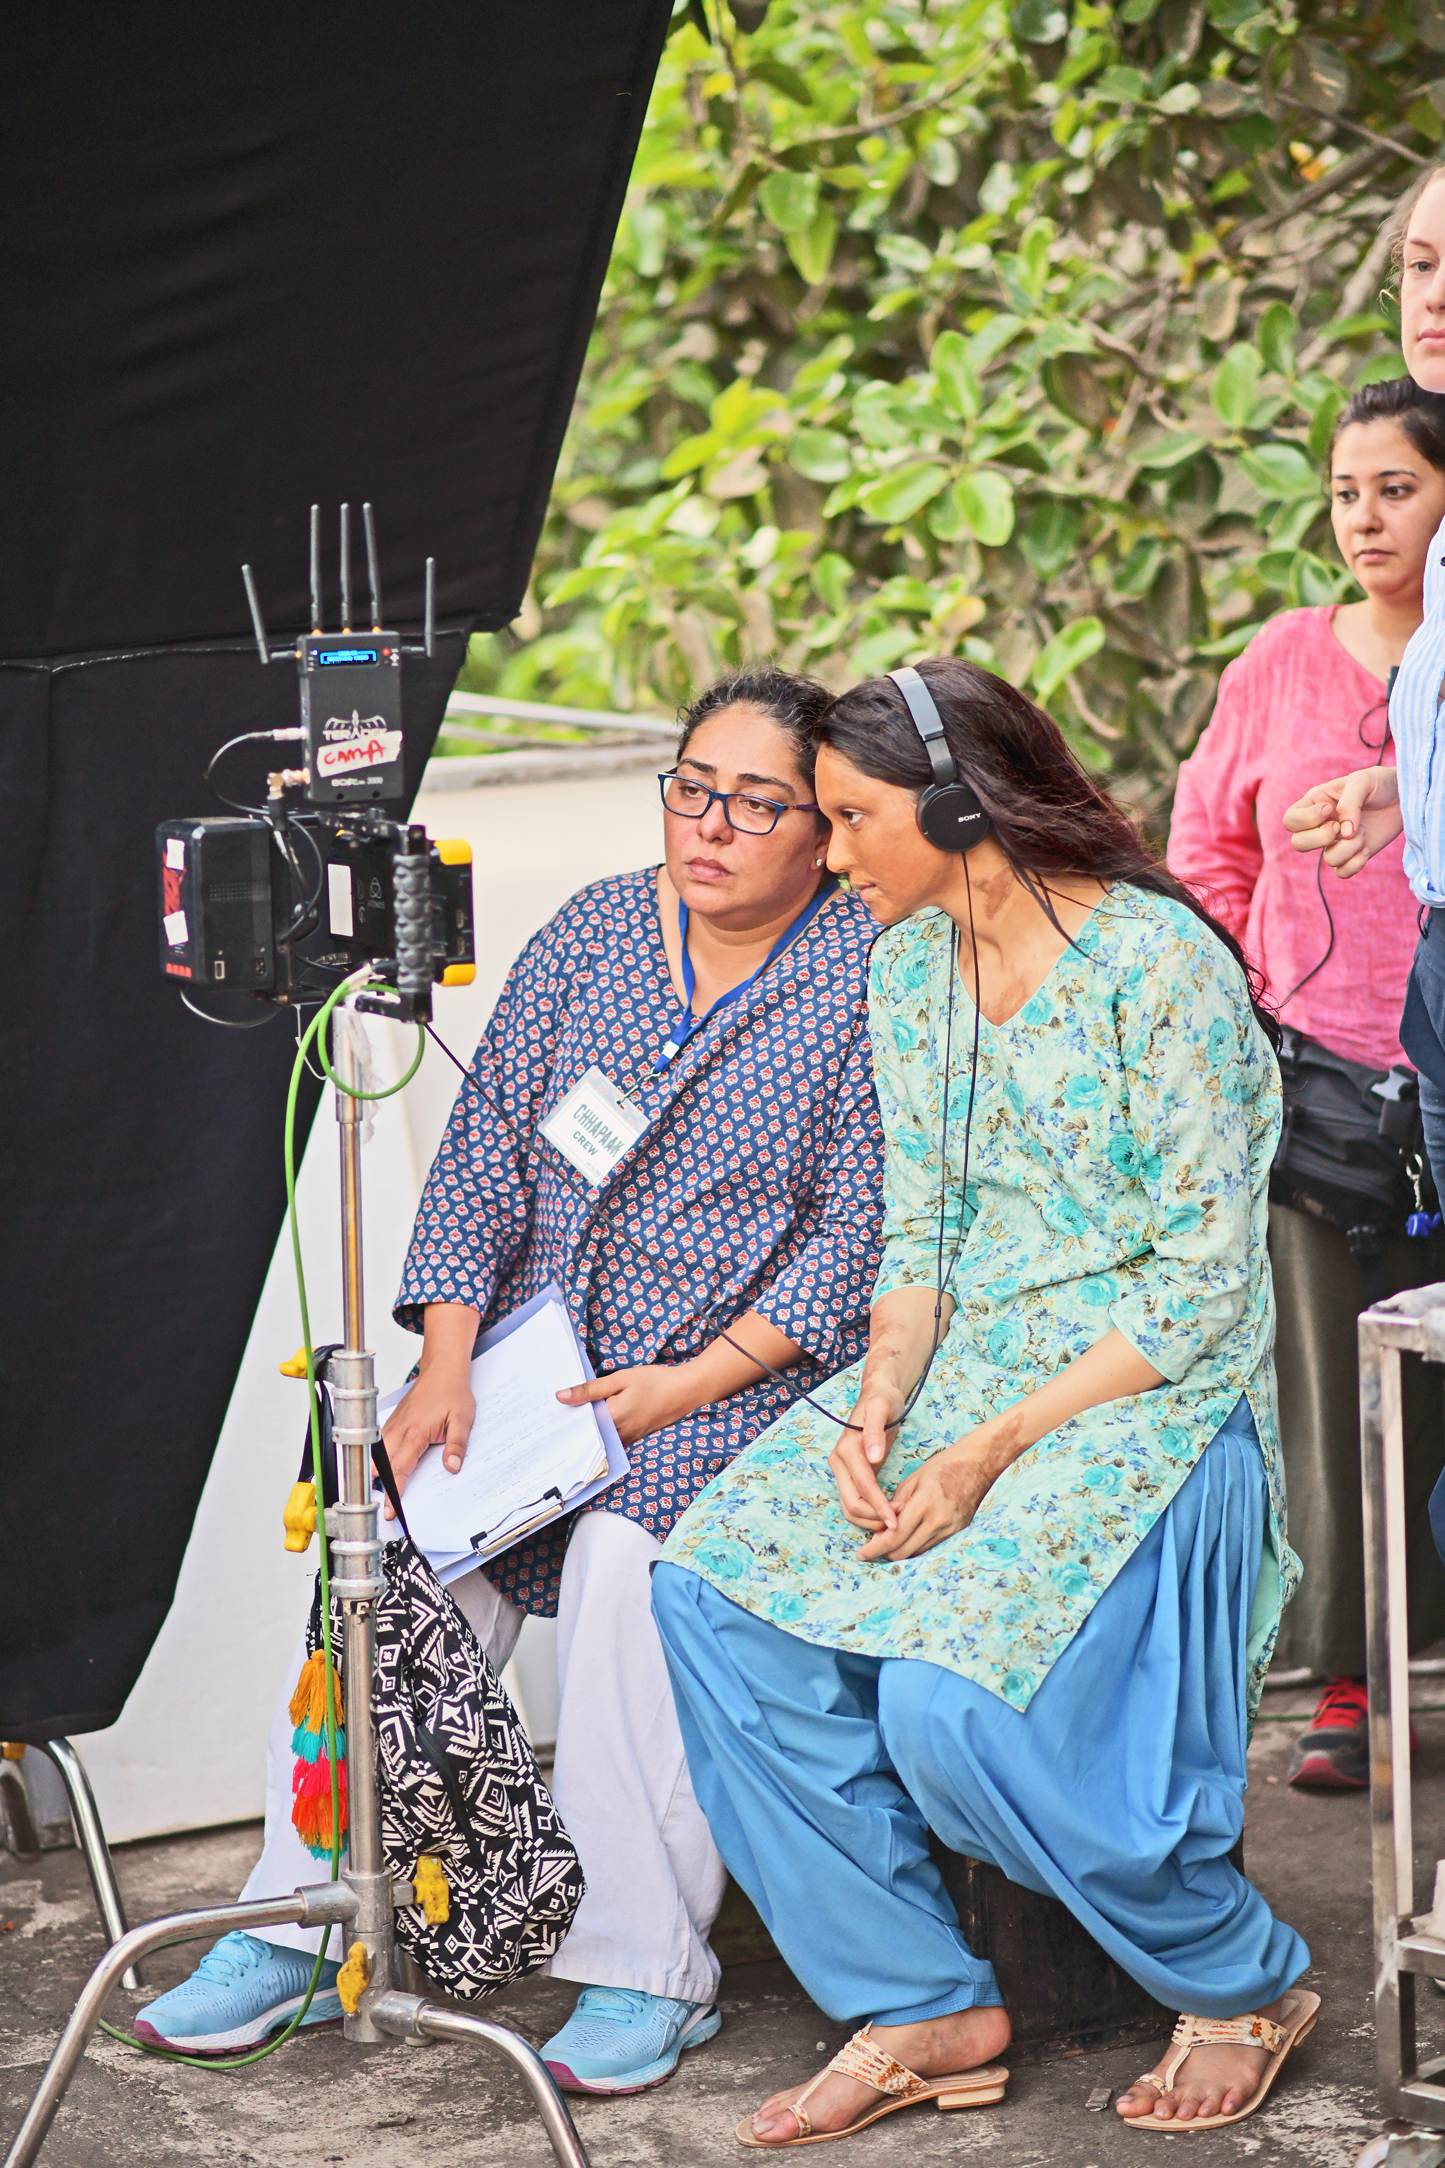 Director Meghna Gulzar and actor Deepika Padukone on the set of Chhapaak